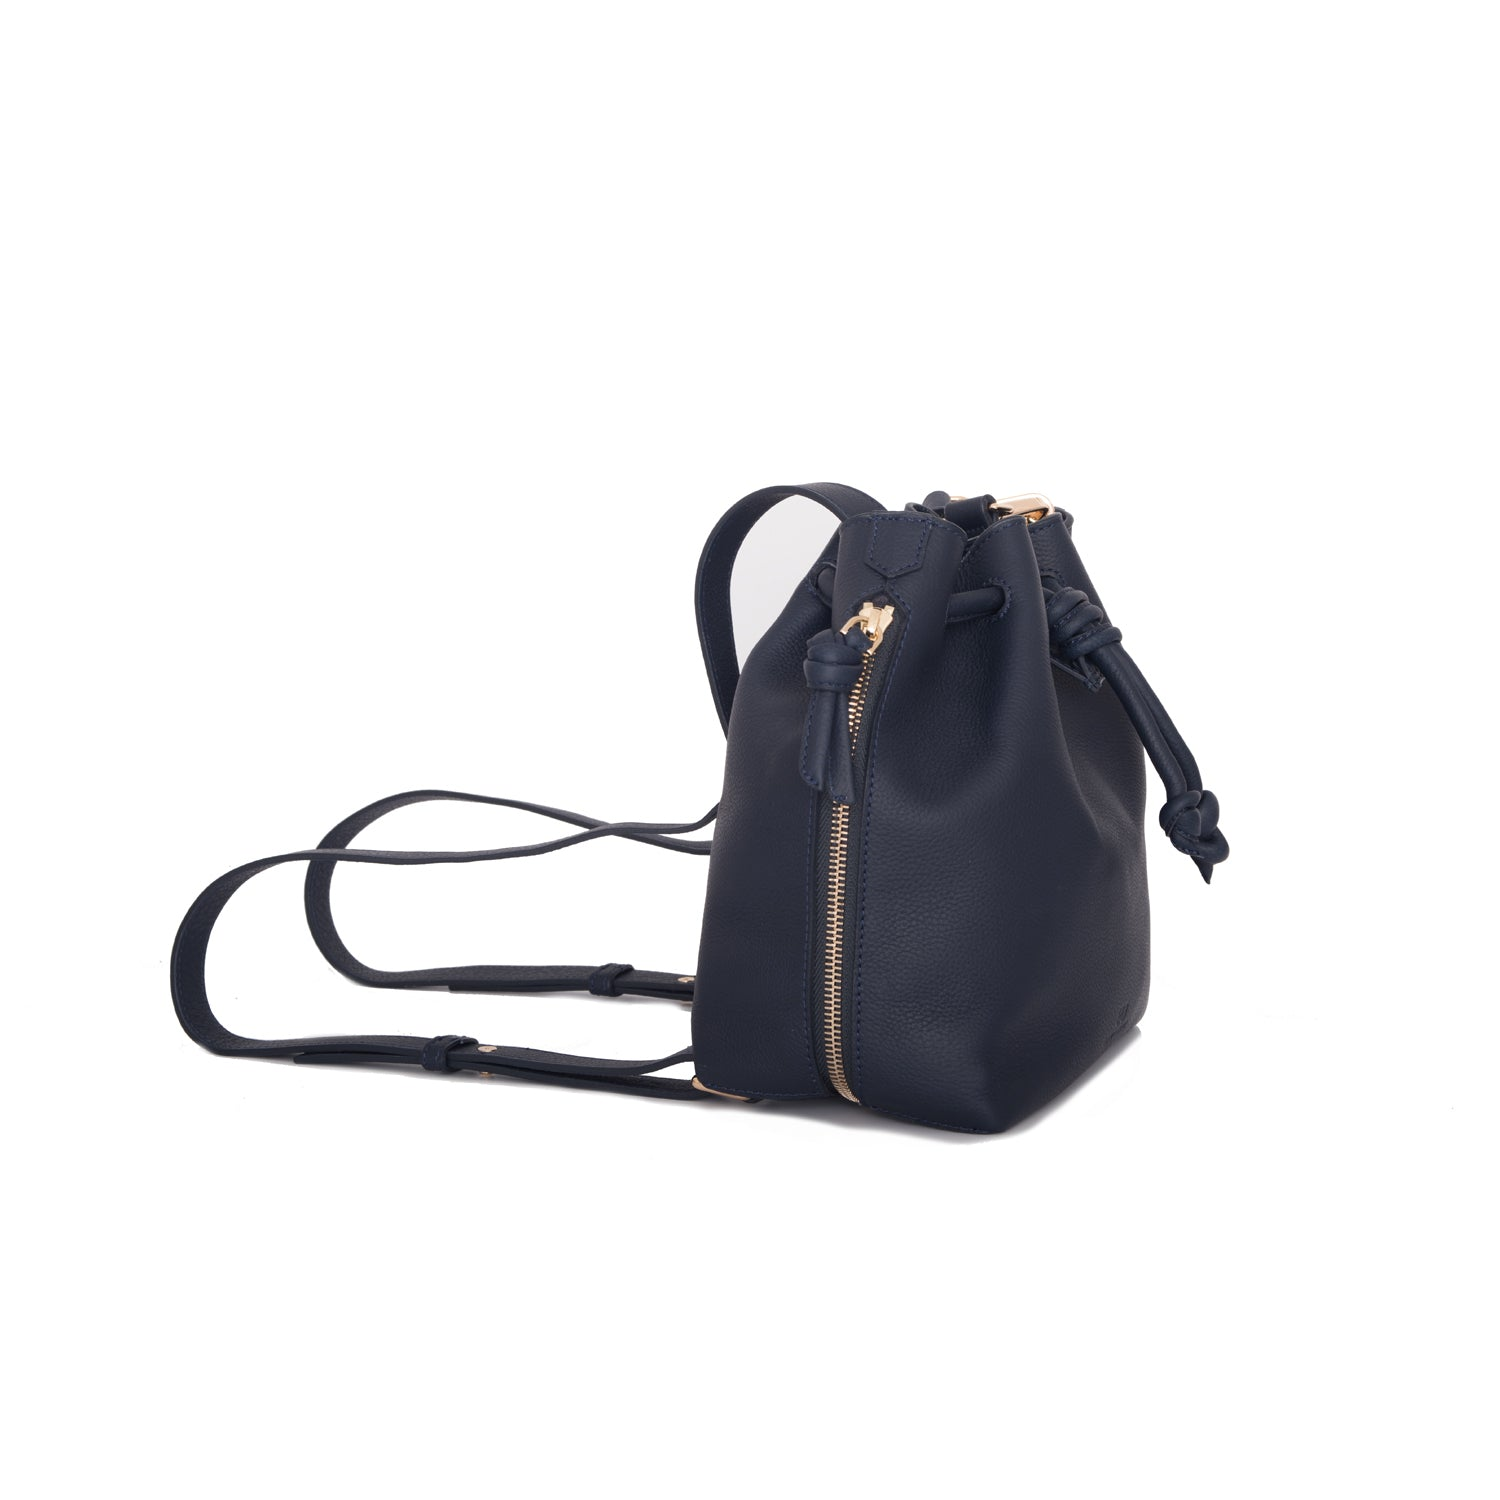 A convertible medium leather bucket crossbody bag in sparkly navy that could be used as a backpack, side image.